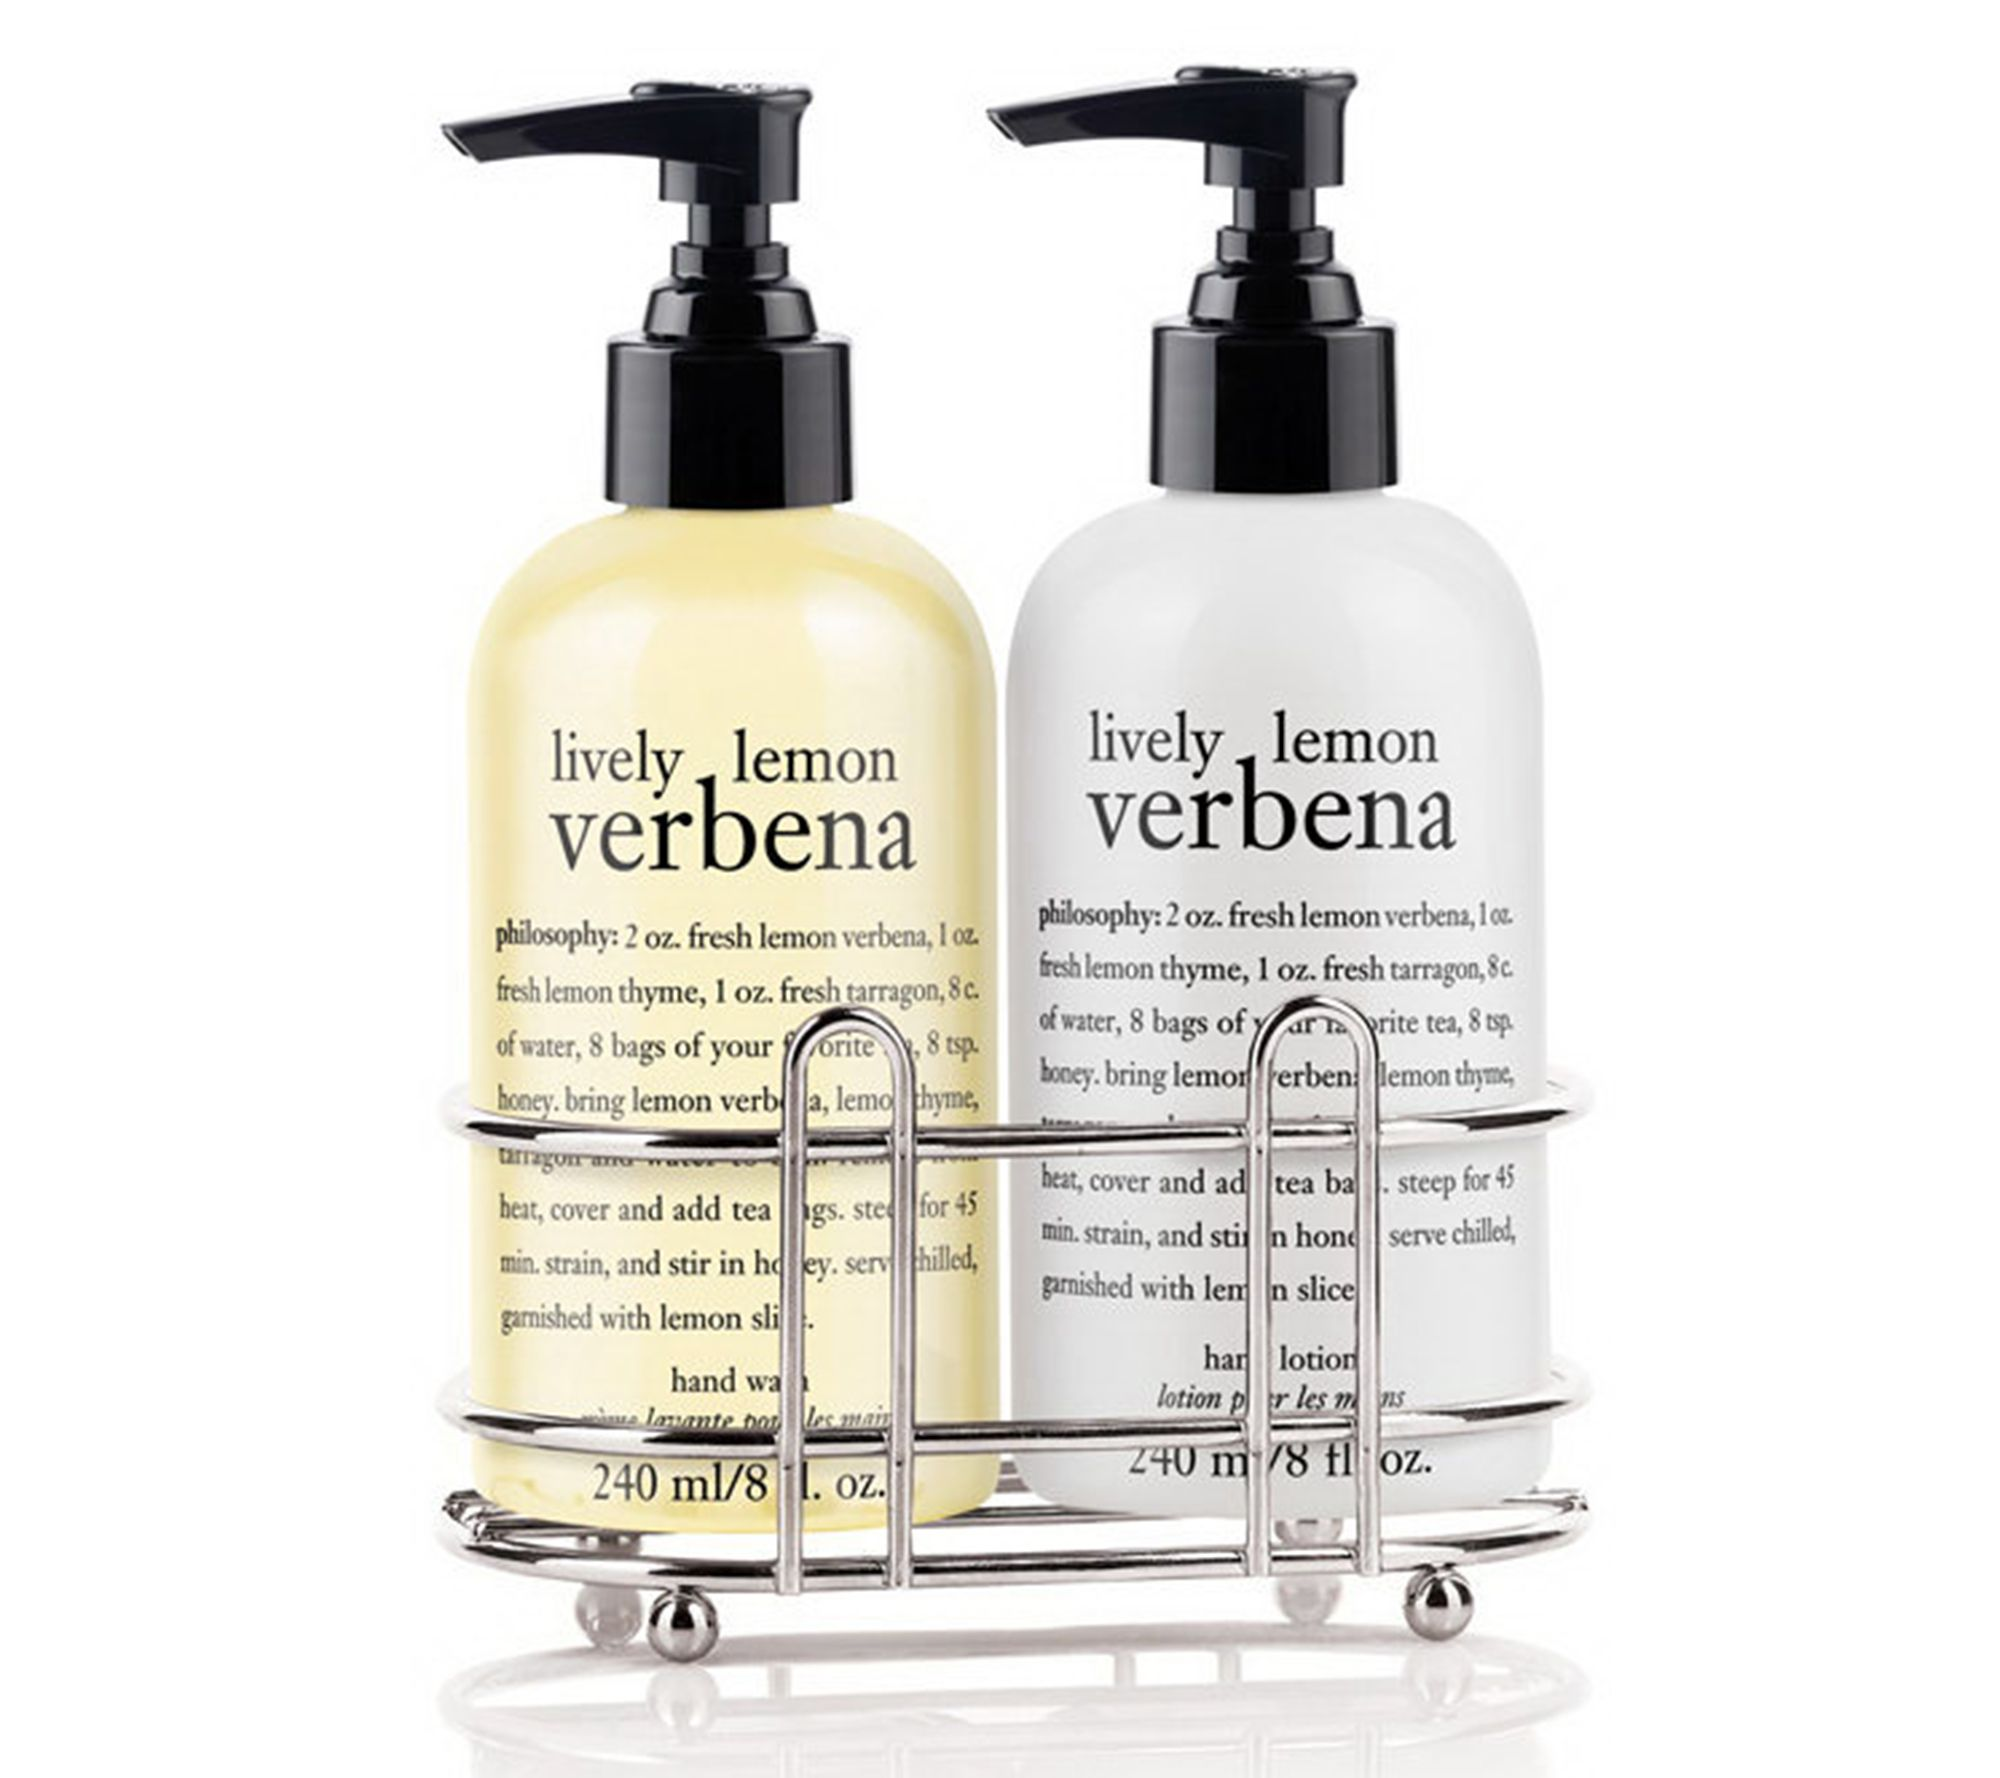 philosophy hand wash & hand lotion duo with sink caddy